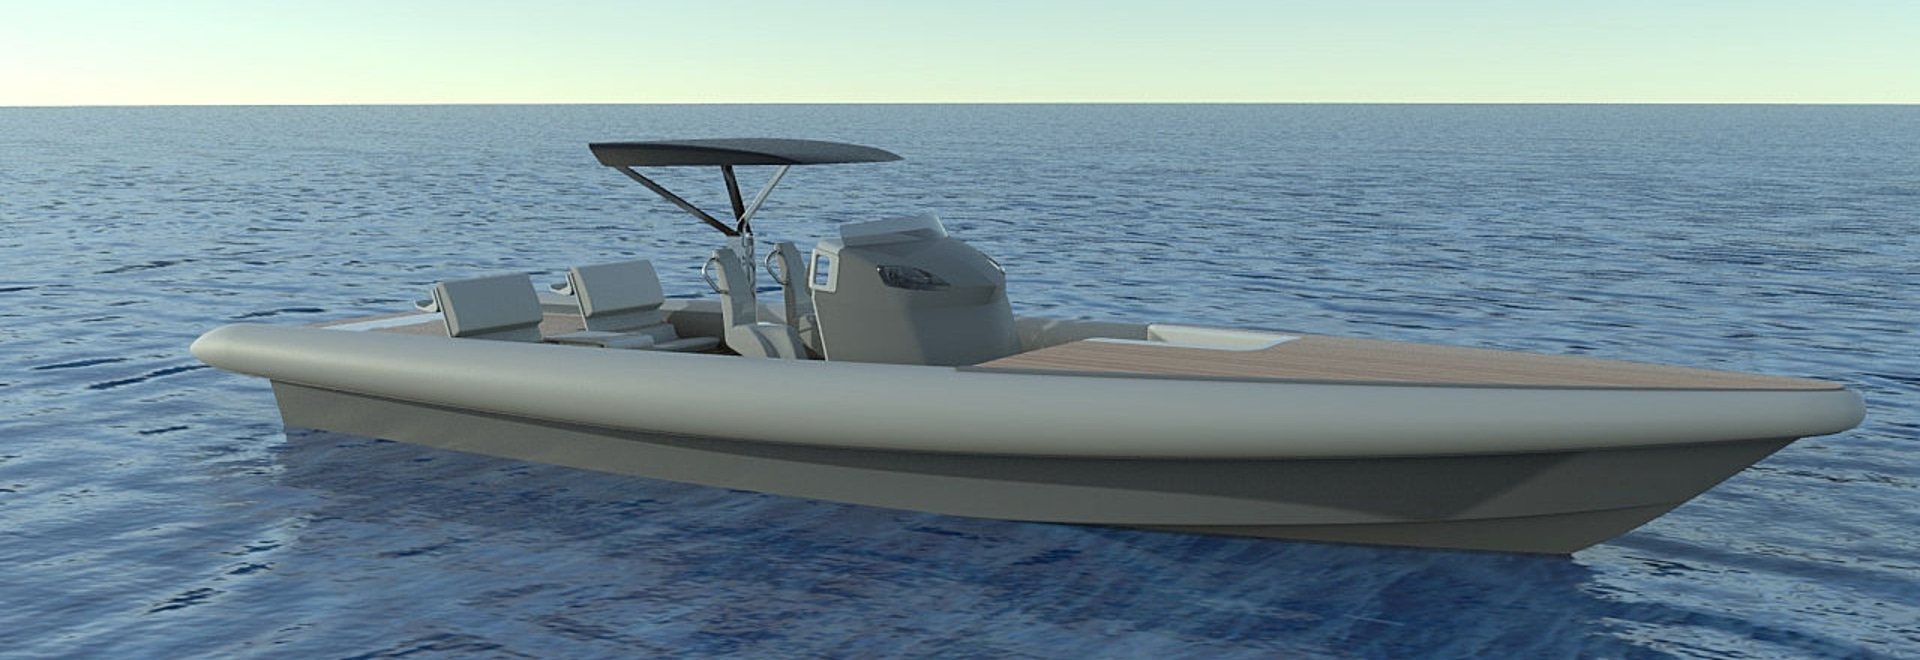 FLASH CAT TENDER: the new production line of Flash Catamarans